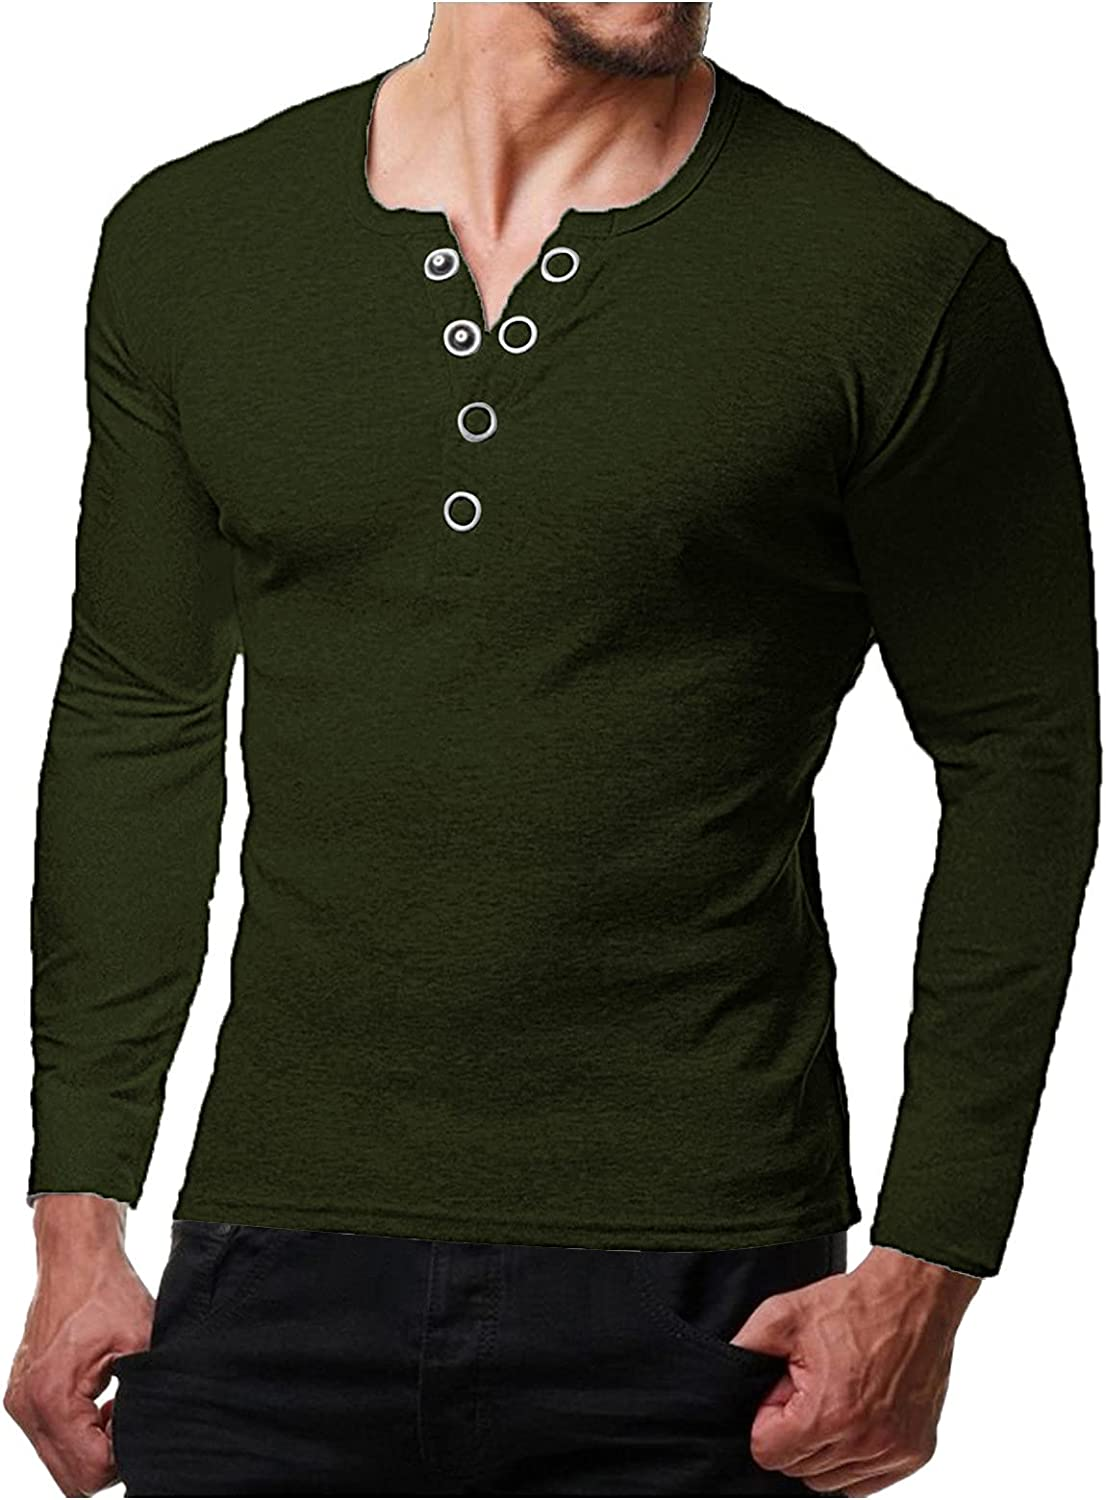 DZQUY Mens Fashion Casual Front Placket Basic Long Sleeve Henley T-Shirts Slim Fit Outdoor Gym Workout Muscle Shirts Tops